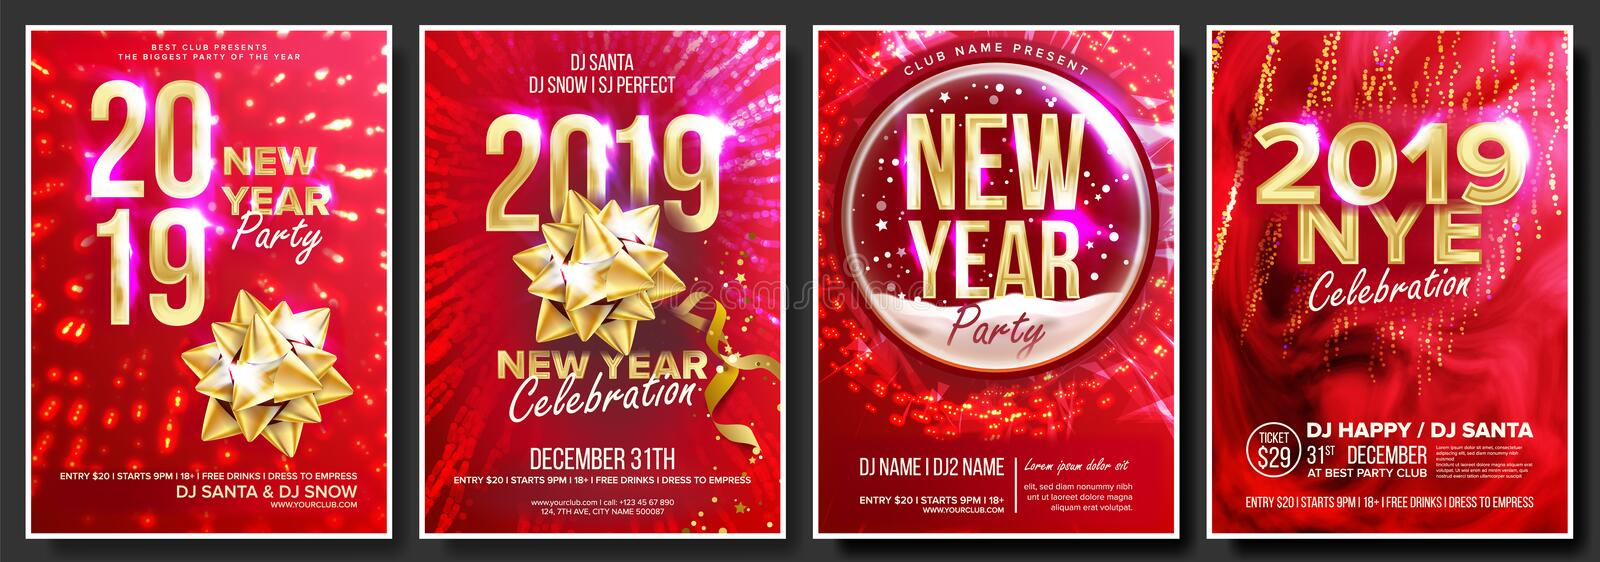 2019 Party Flyer Poster Set Vector. Night Club Celebration. Musical Concert Banner. Happy New Year. Celebration Template. Background. Christmas Disco Light royalty free illustration